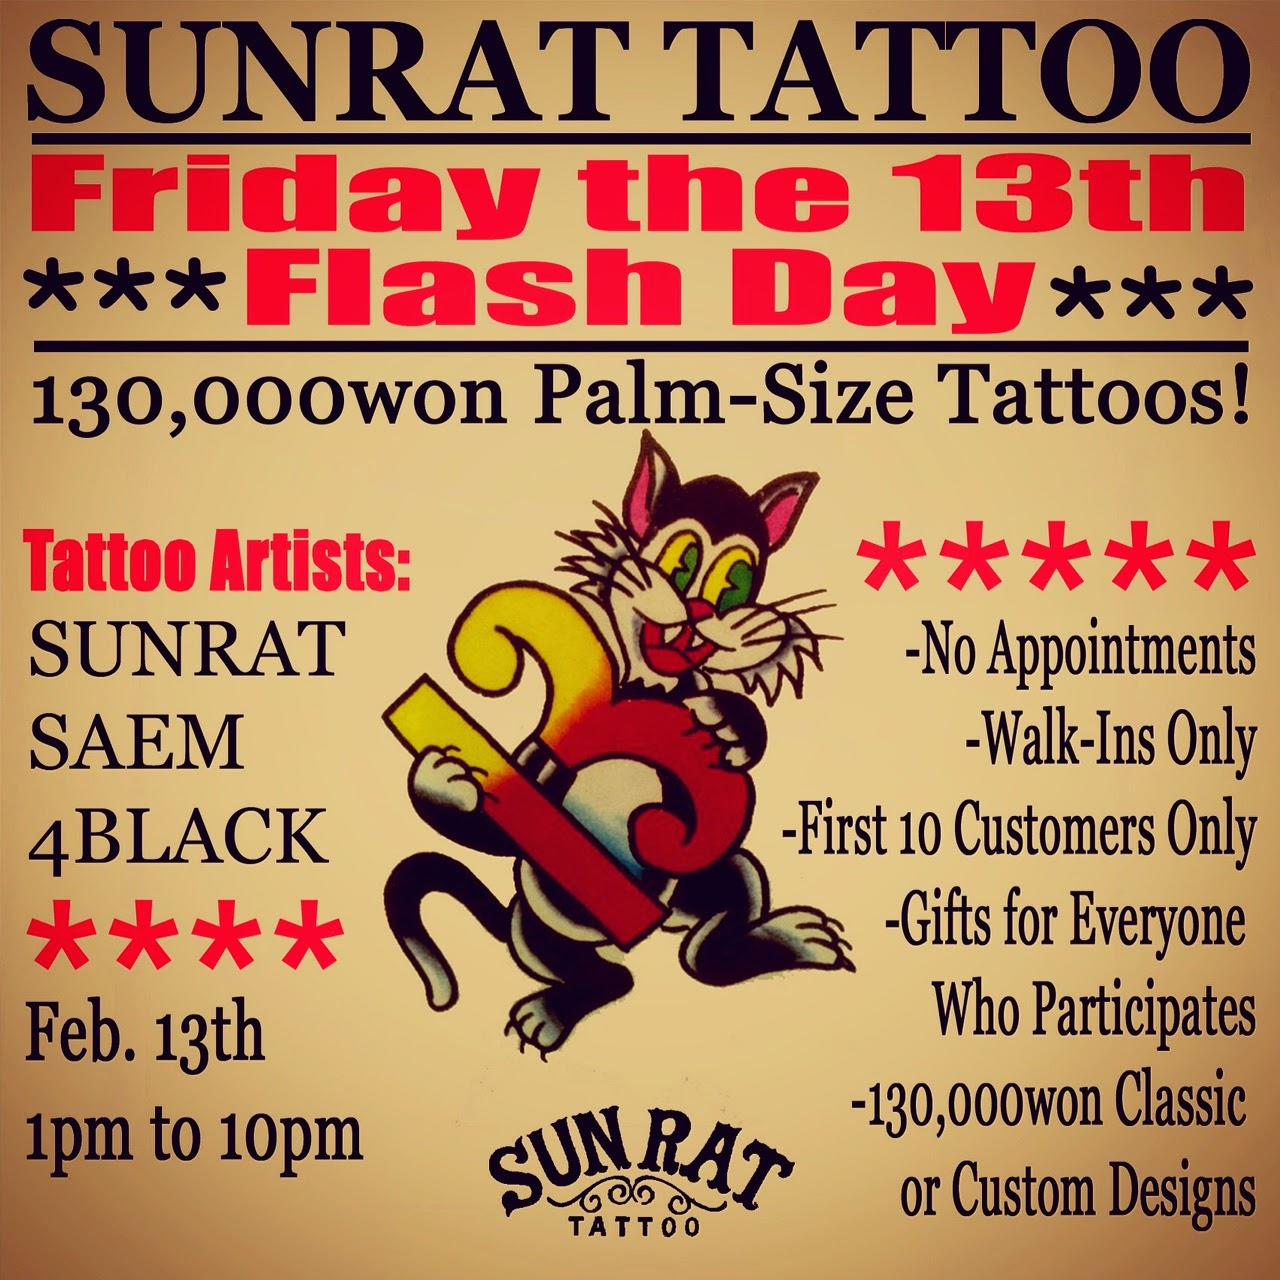 Sunrat tattoo now on google blogspot friday the 13th for Friday the 13th tattoo specials near me